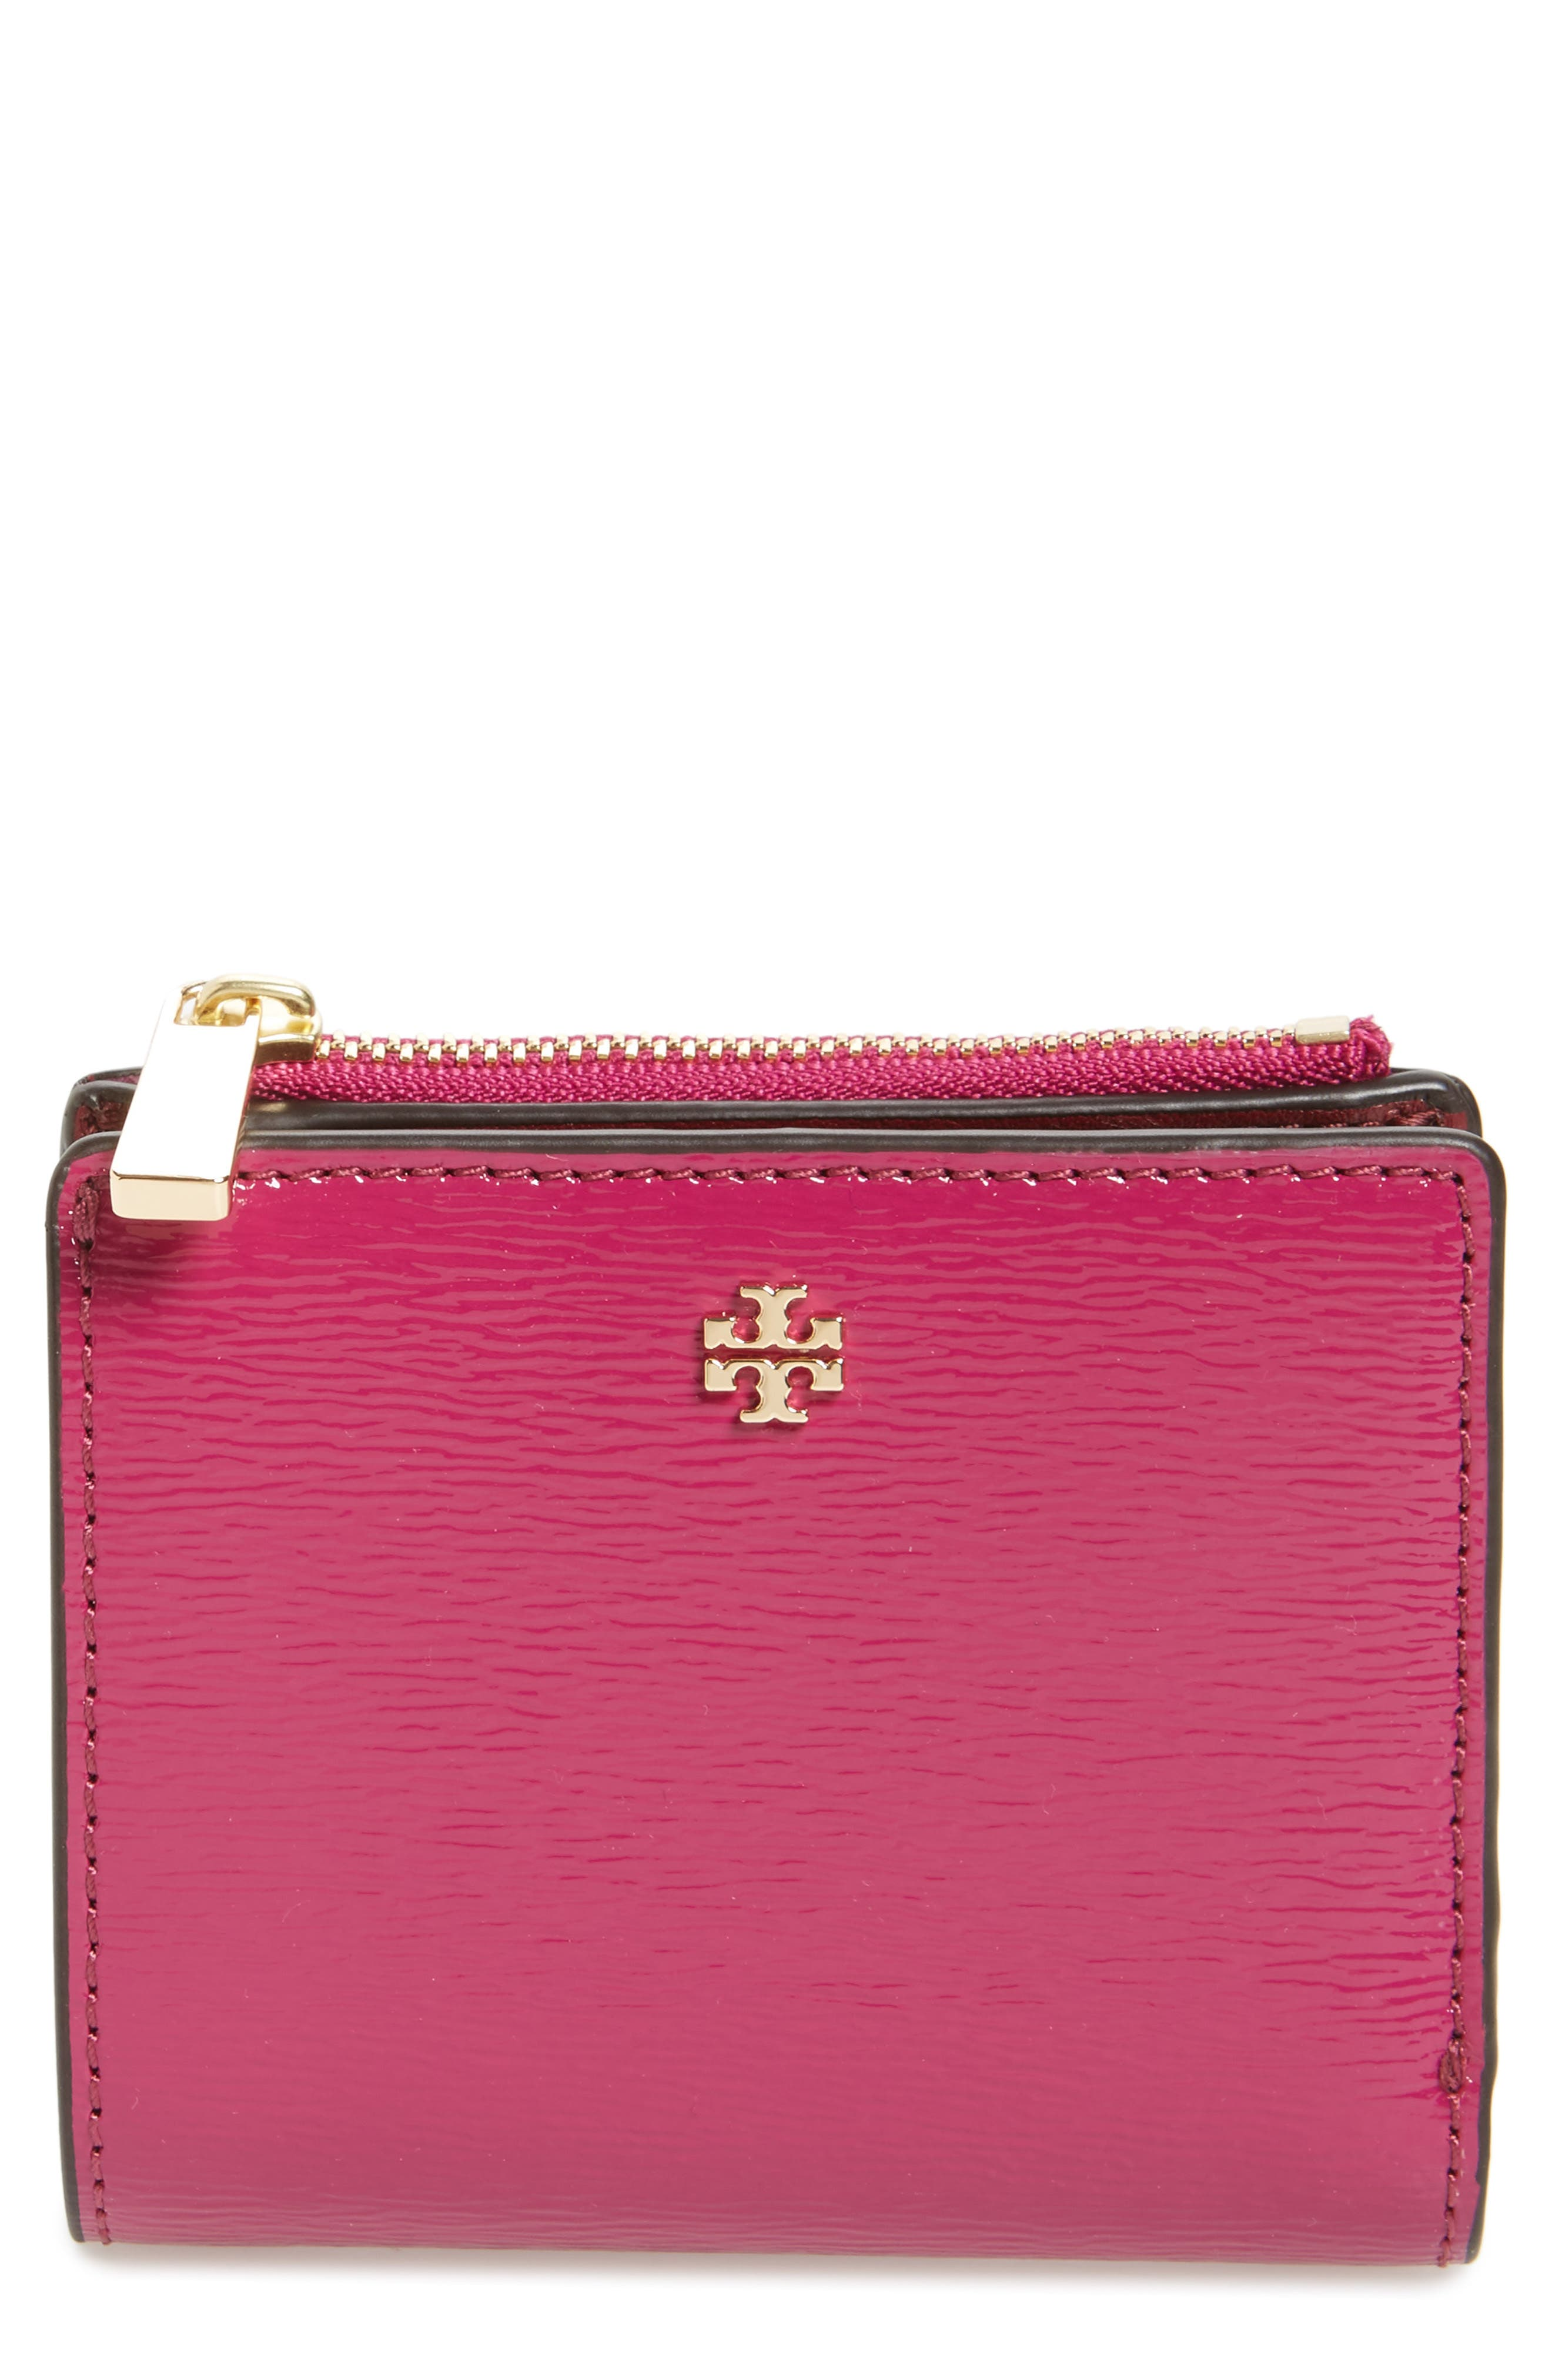 Mini Robinson Wallet Patent Leather Bifold Wallet,                             Main thumbnail 1, color,                             Party Fuchsia